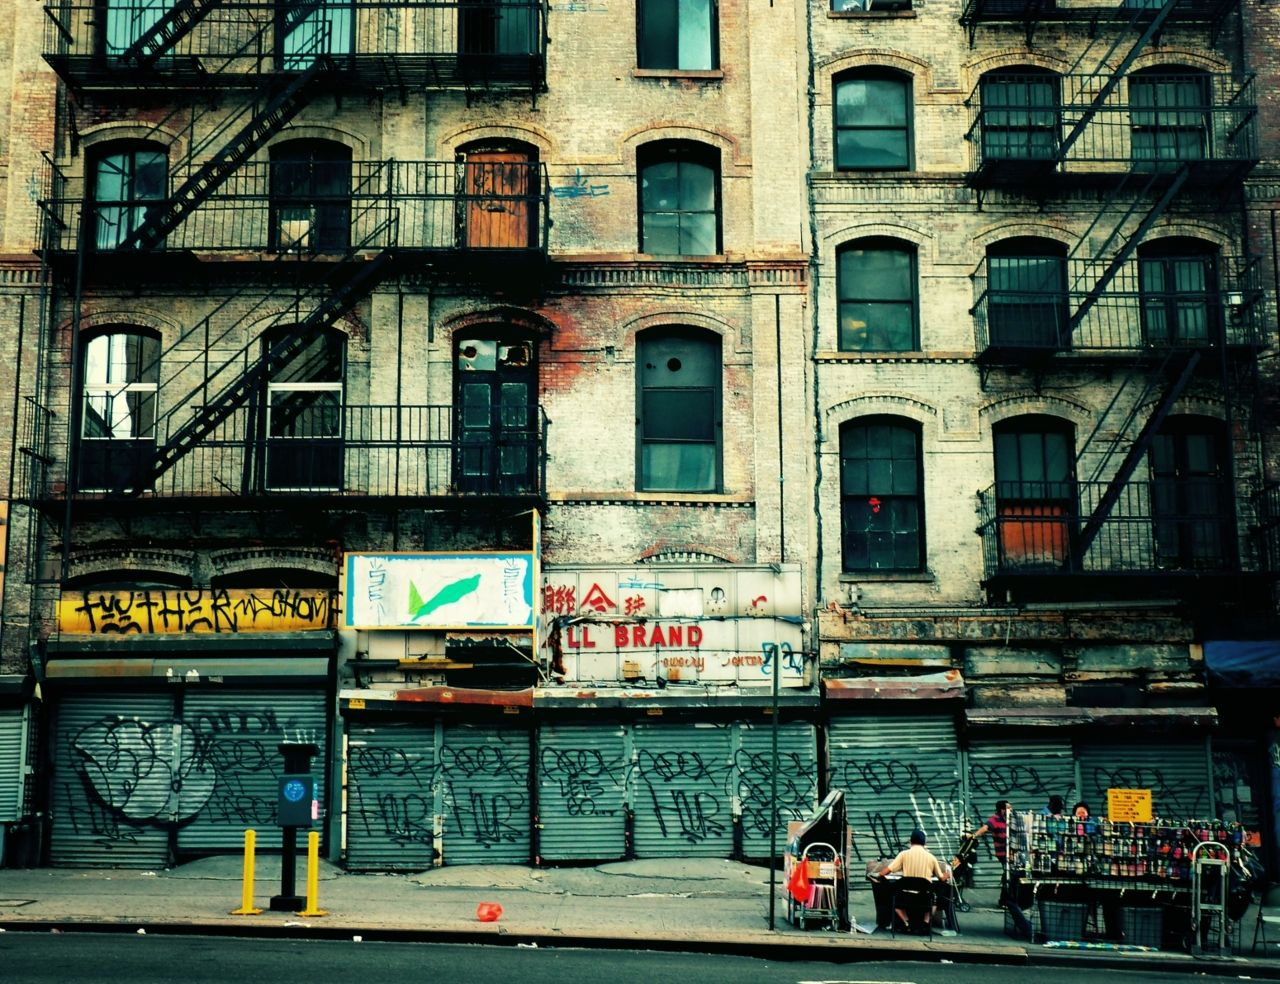 Urban Decay On Canal Street Chinatown New York Ny Through The Lens New York City Photography City Photography City Art Chinatown Nyc